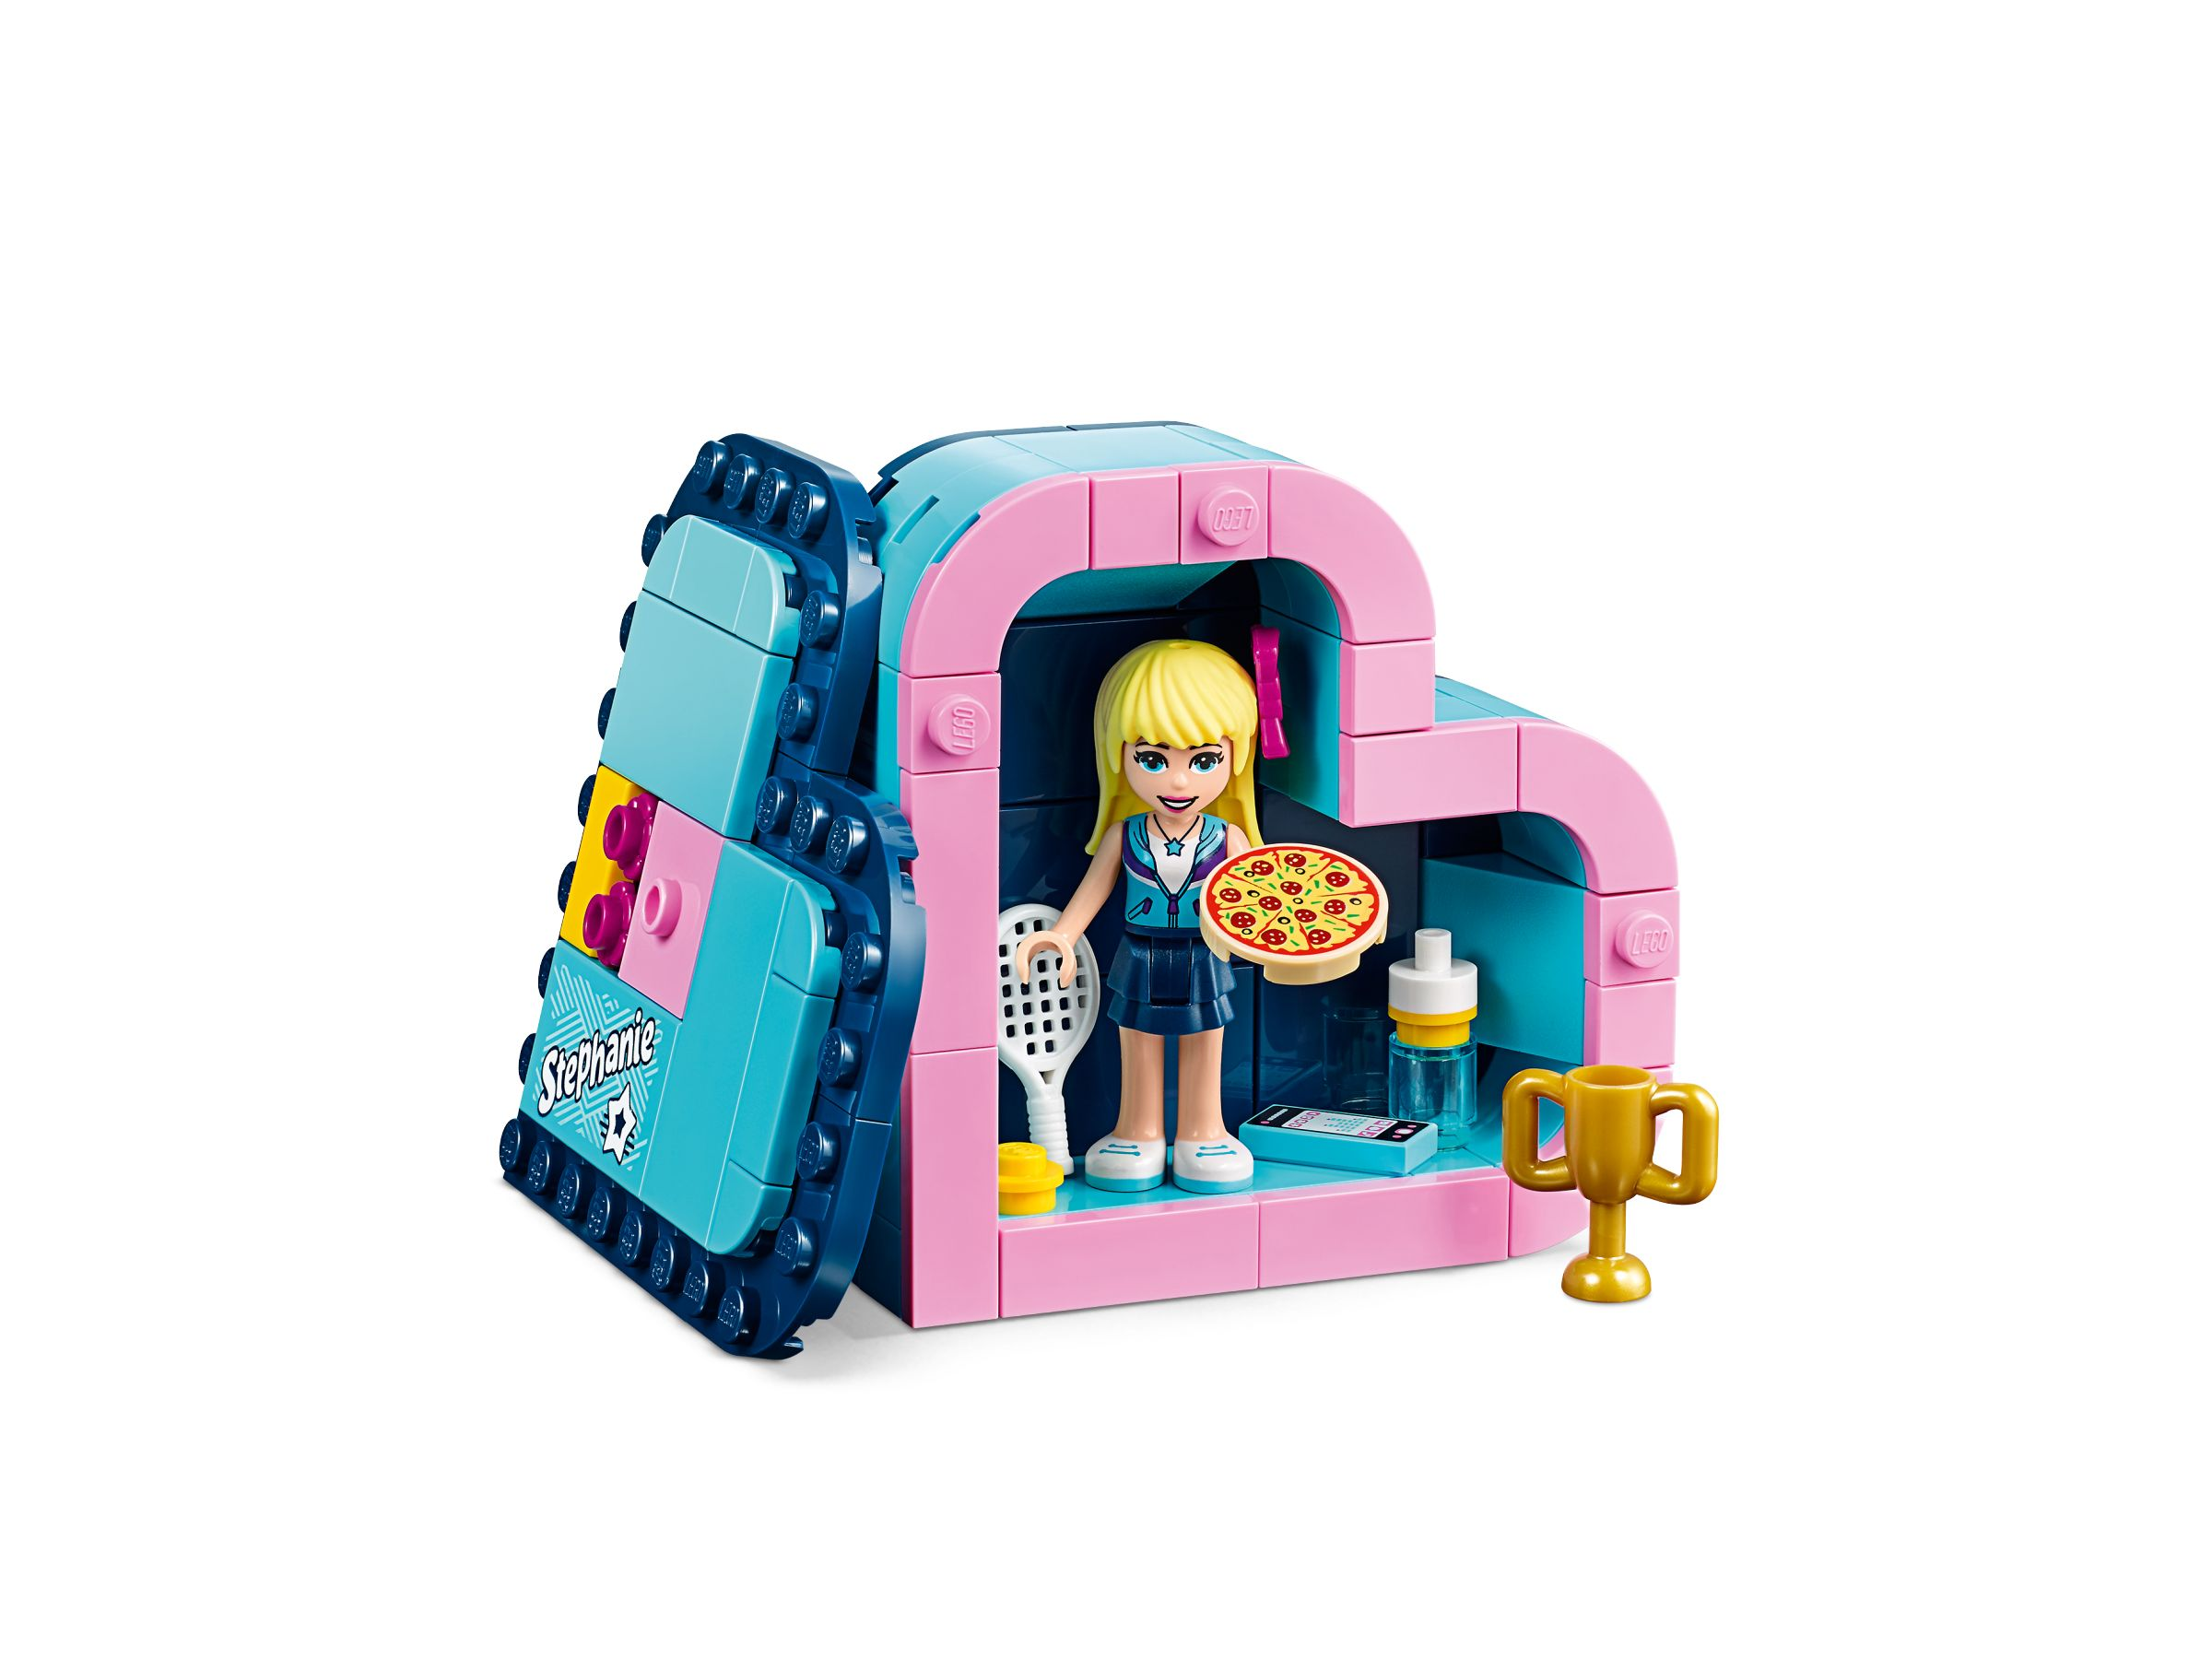 LEGO Friends 41356 Stephanies Herzbox LEGO_41356_alt3.jpg